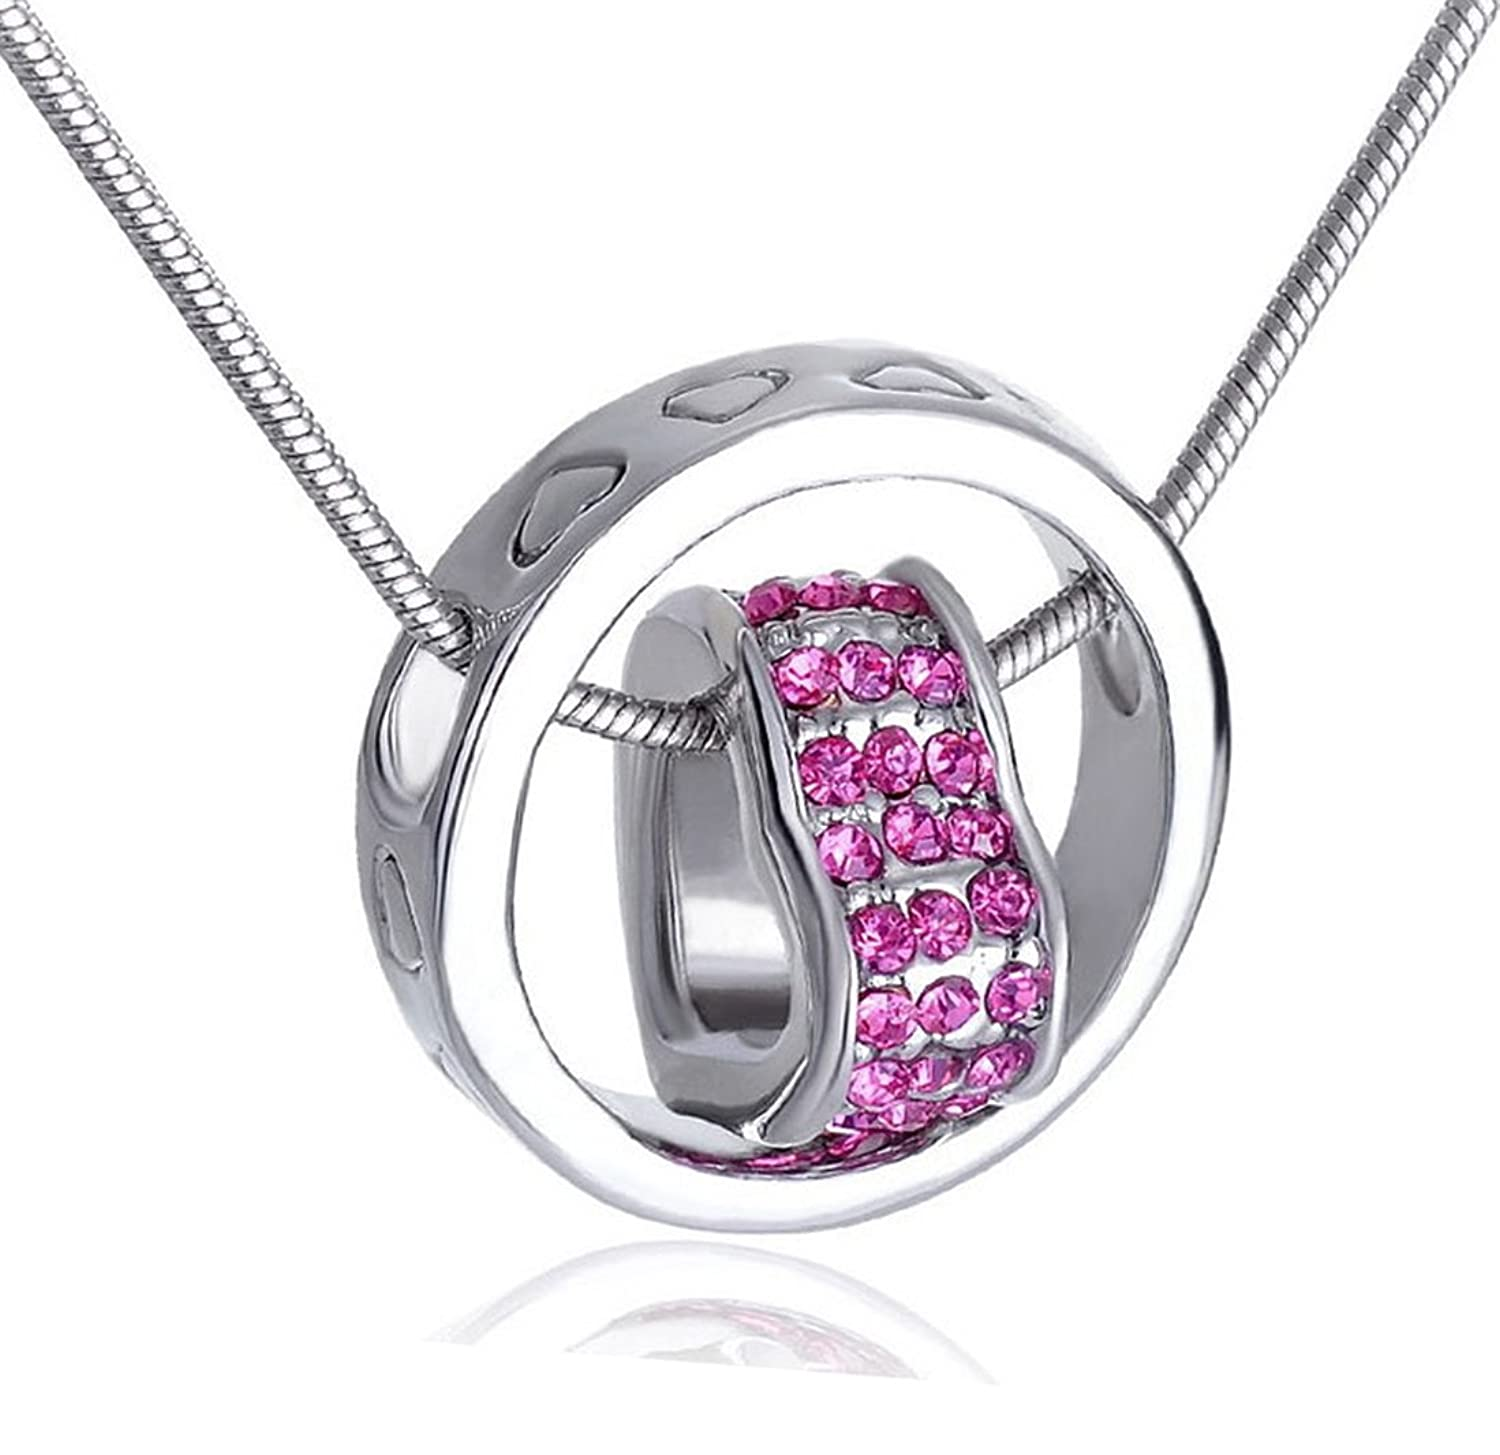 austrian pendant necklace with chain for